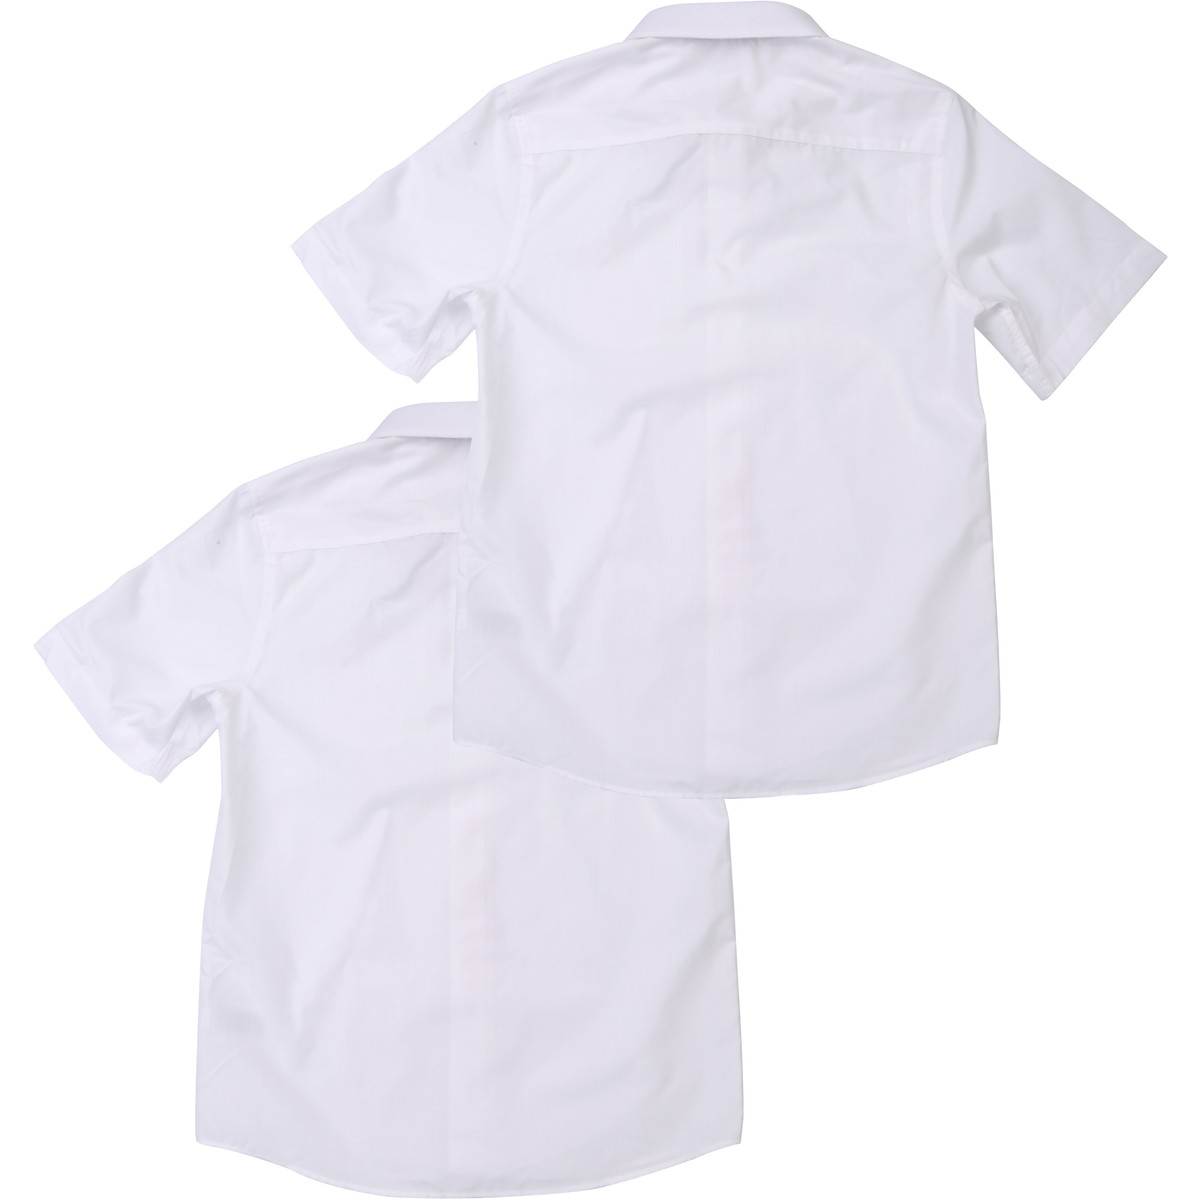 Big W School Shirts Brilliant Basics School Shirts 2 Pack White